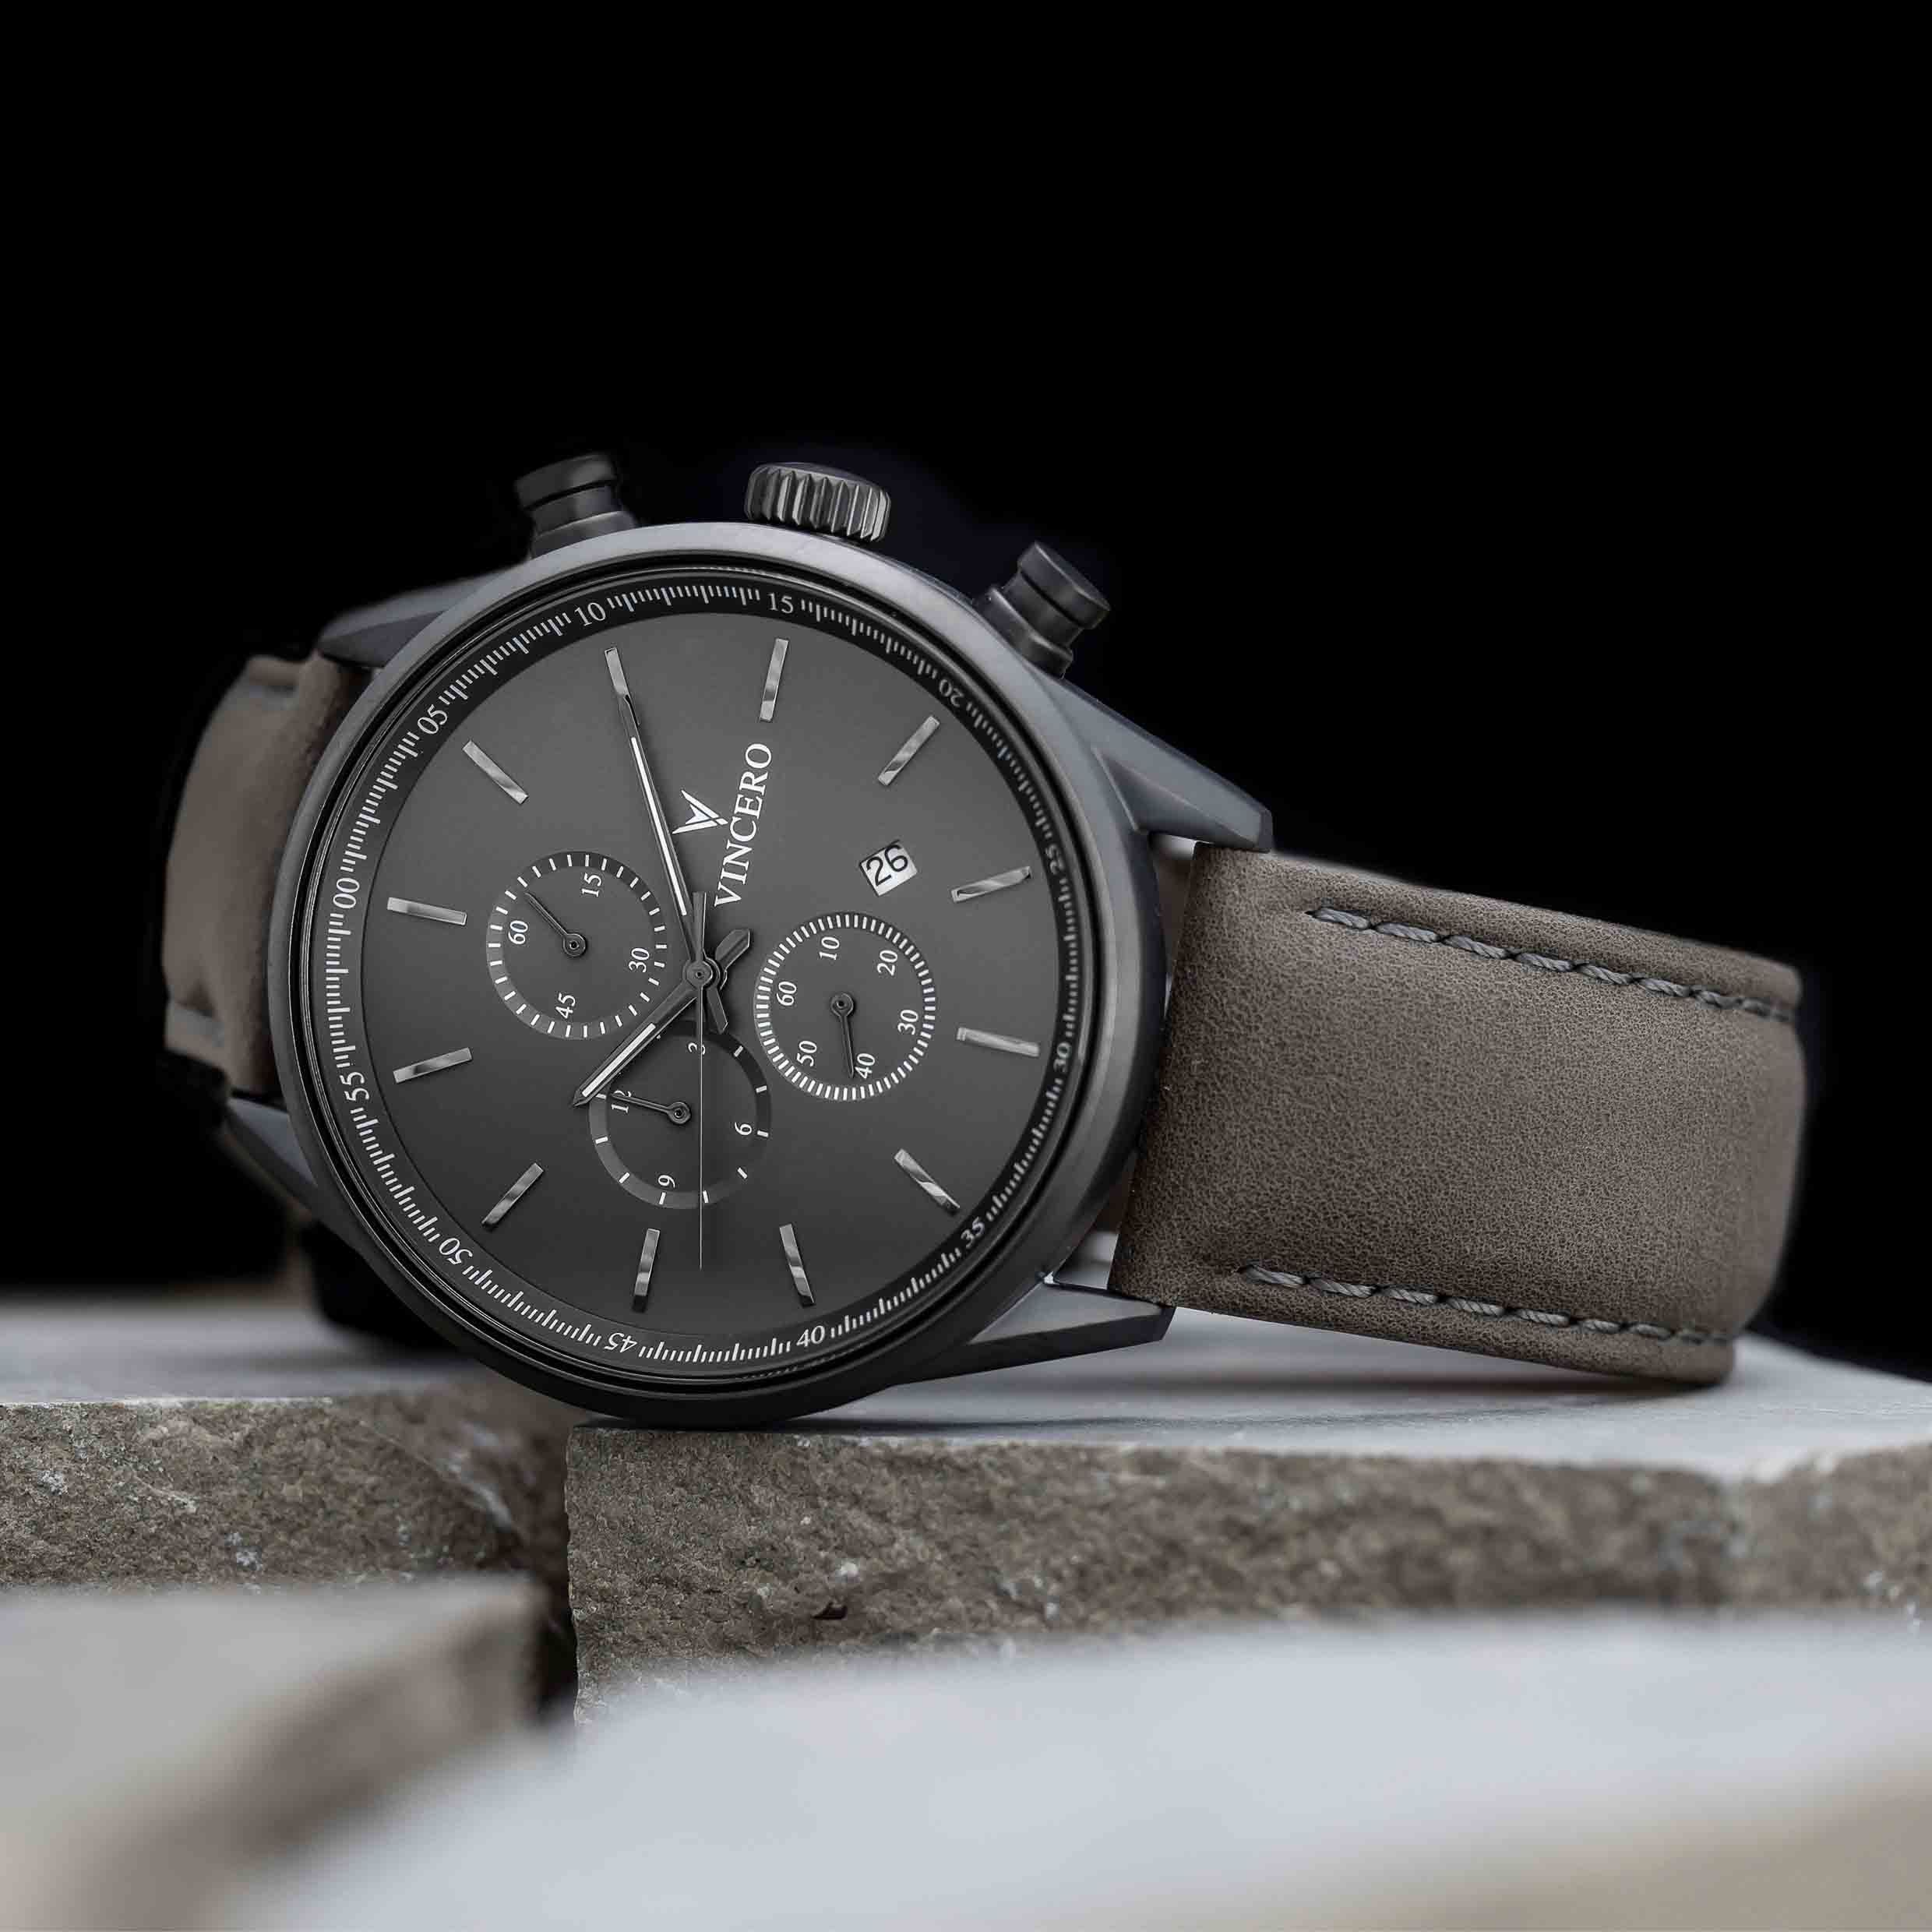 The Chrono S Matte Gray in 2020 | Leather watch bands